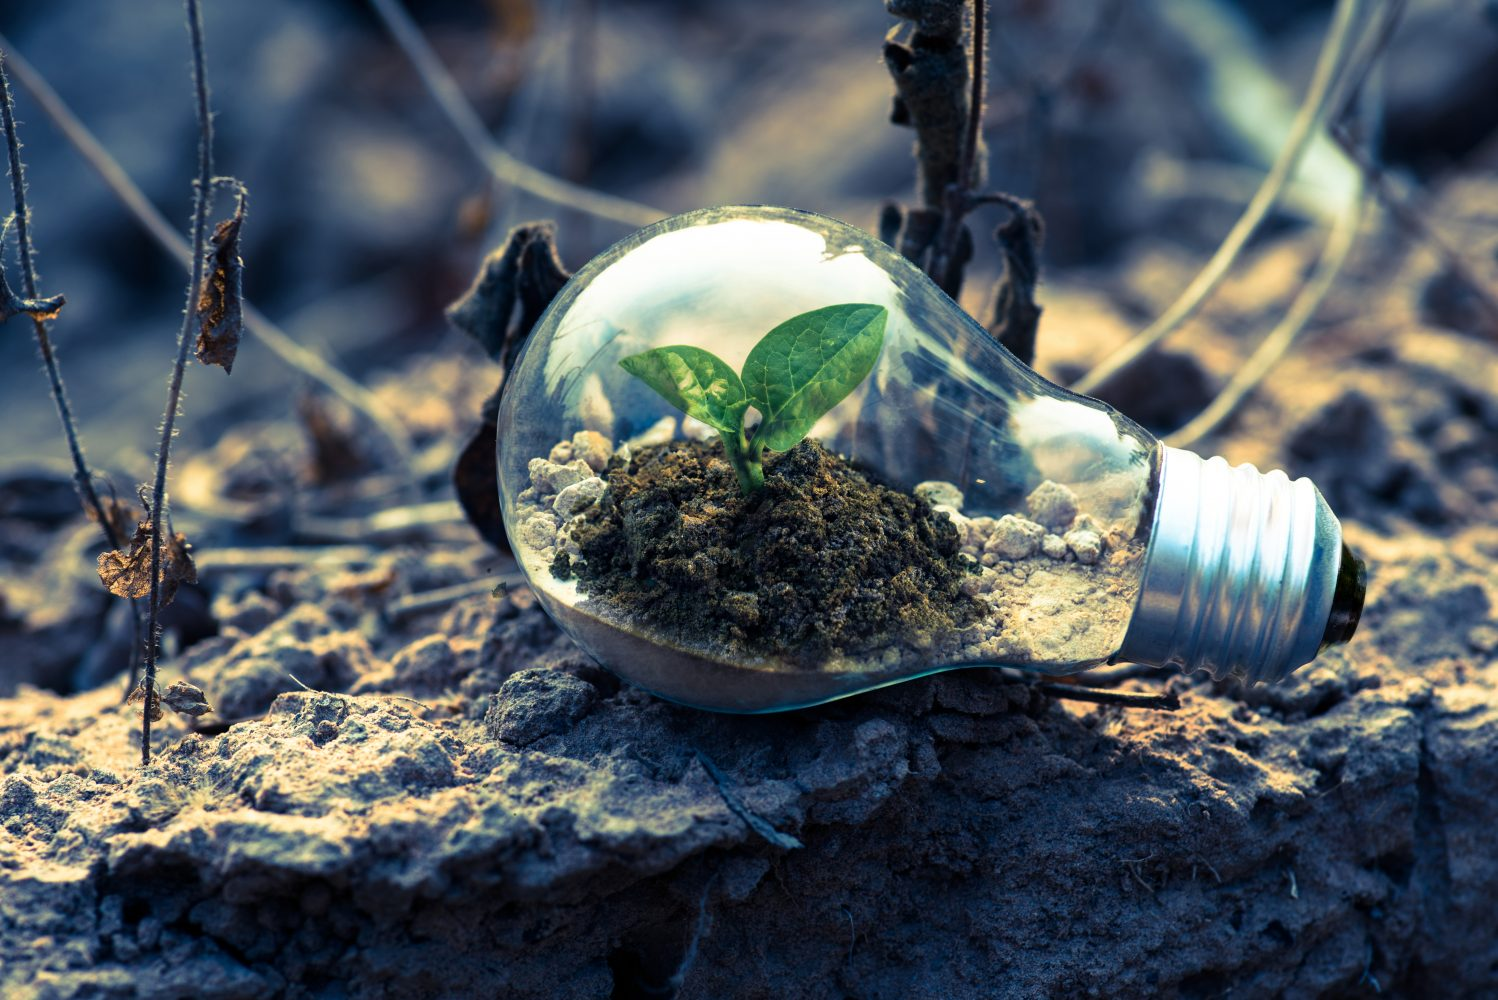 Sprouting plant growing inside of a lightbulb that is laying down on a desolate area of dirt